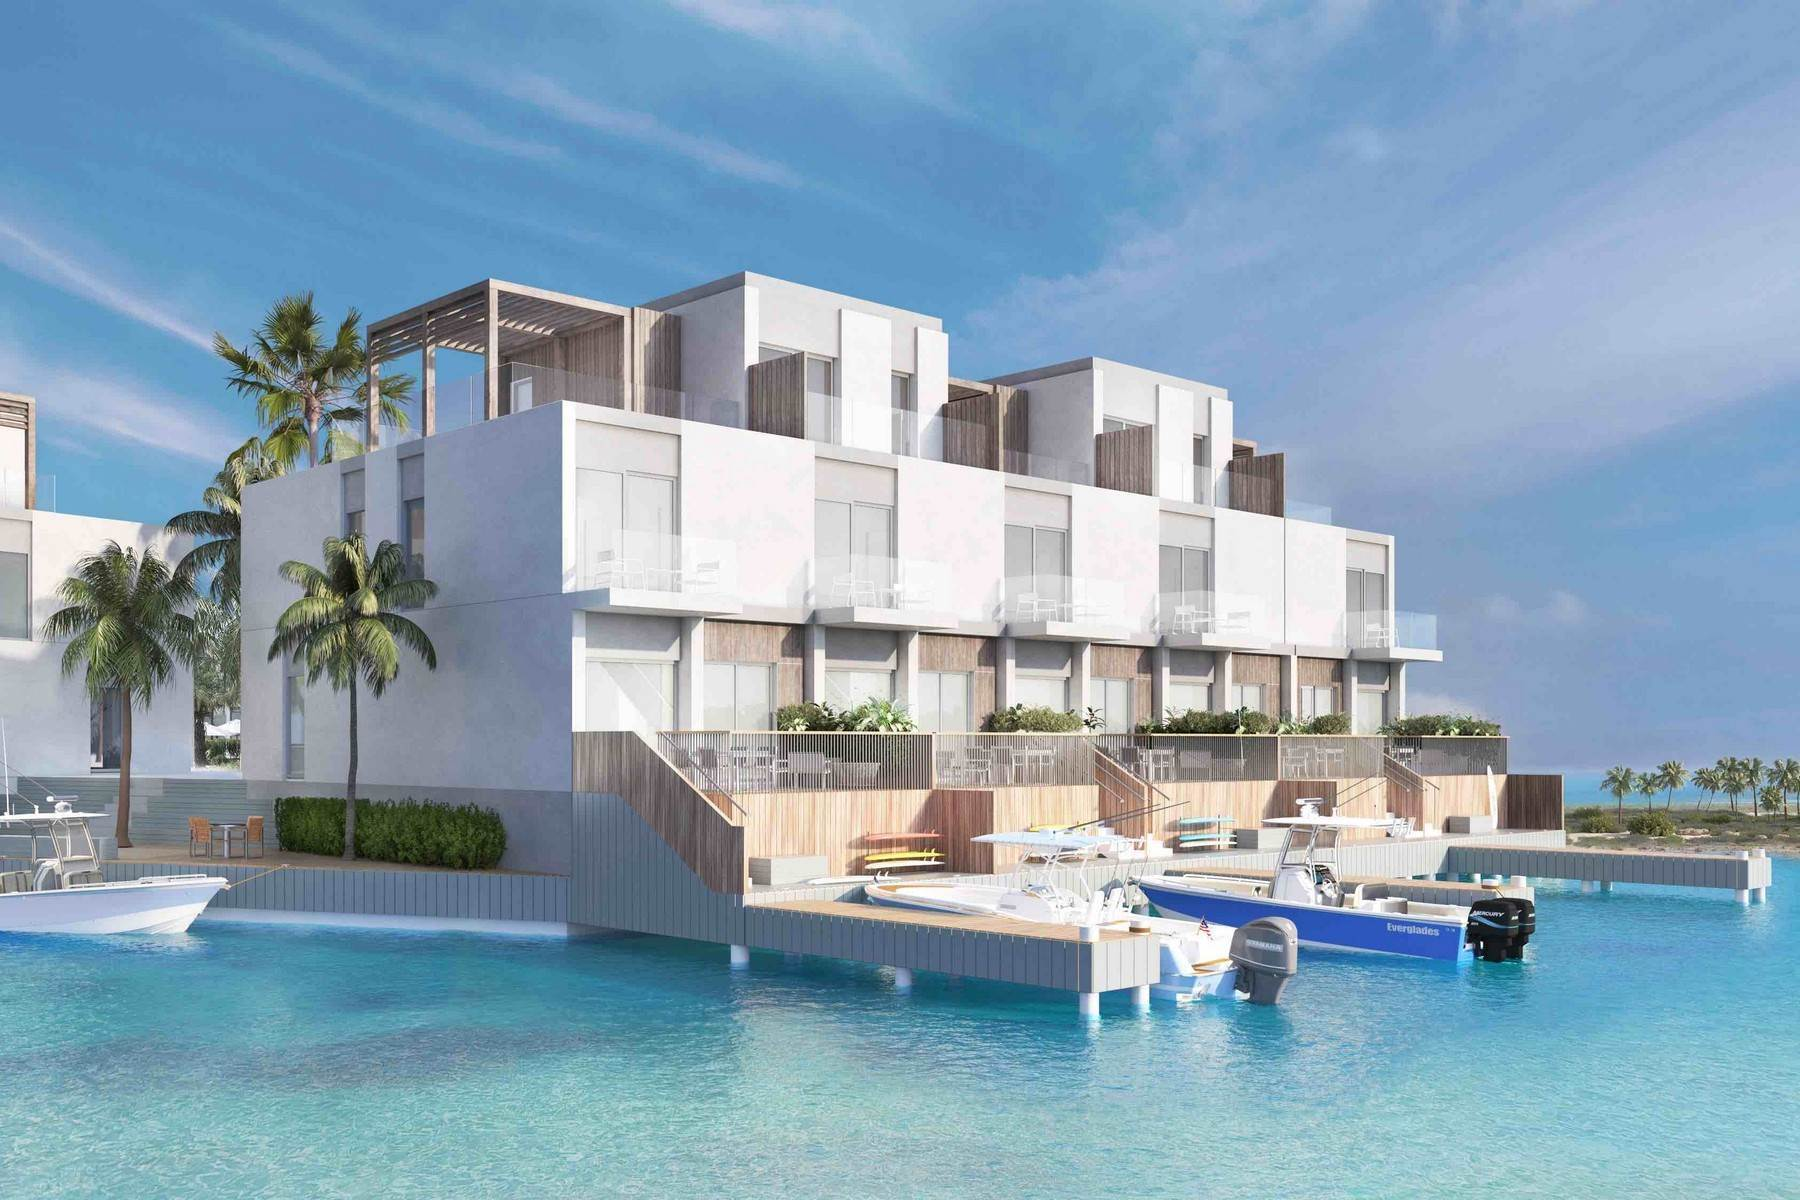 townhouses for Sale at SOUTH BANK - BOATHOUSES - THREE BEDROOM - A4 South Bank, Long Bay, Providenciales Turks And Caicos Islands